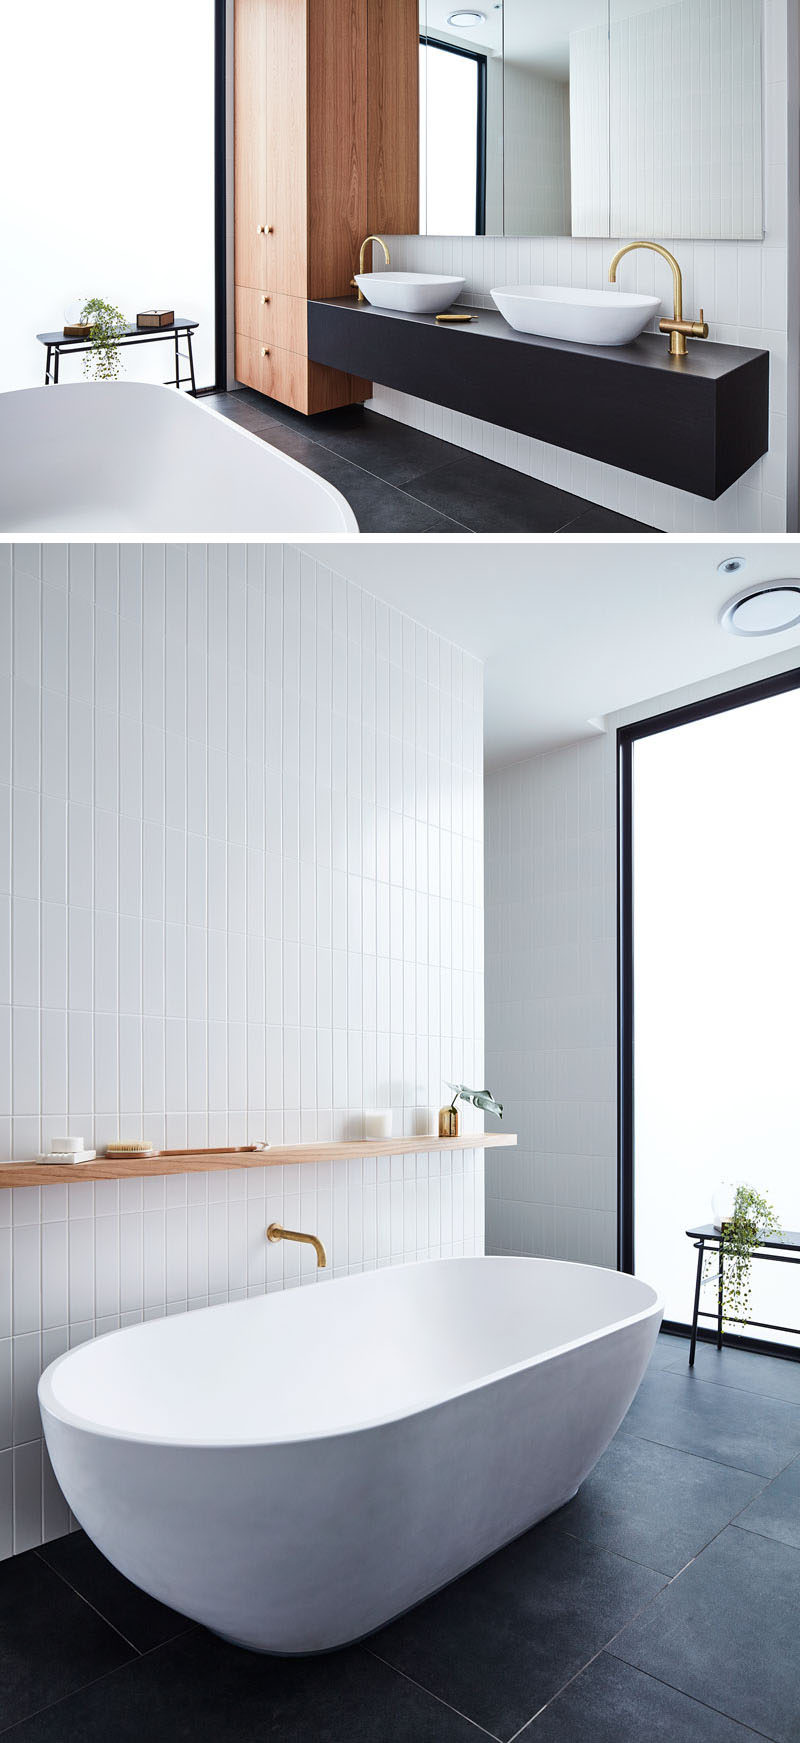 In this modern bathroom, black flooring and a black vanity contrast the white freestanding bathtub and accent tile wall, while the wood cabinets and a plant add a natural element. #ModernBathroom #BathroomDesign